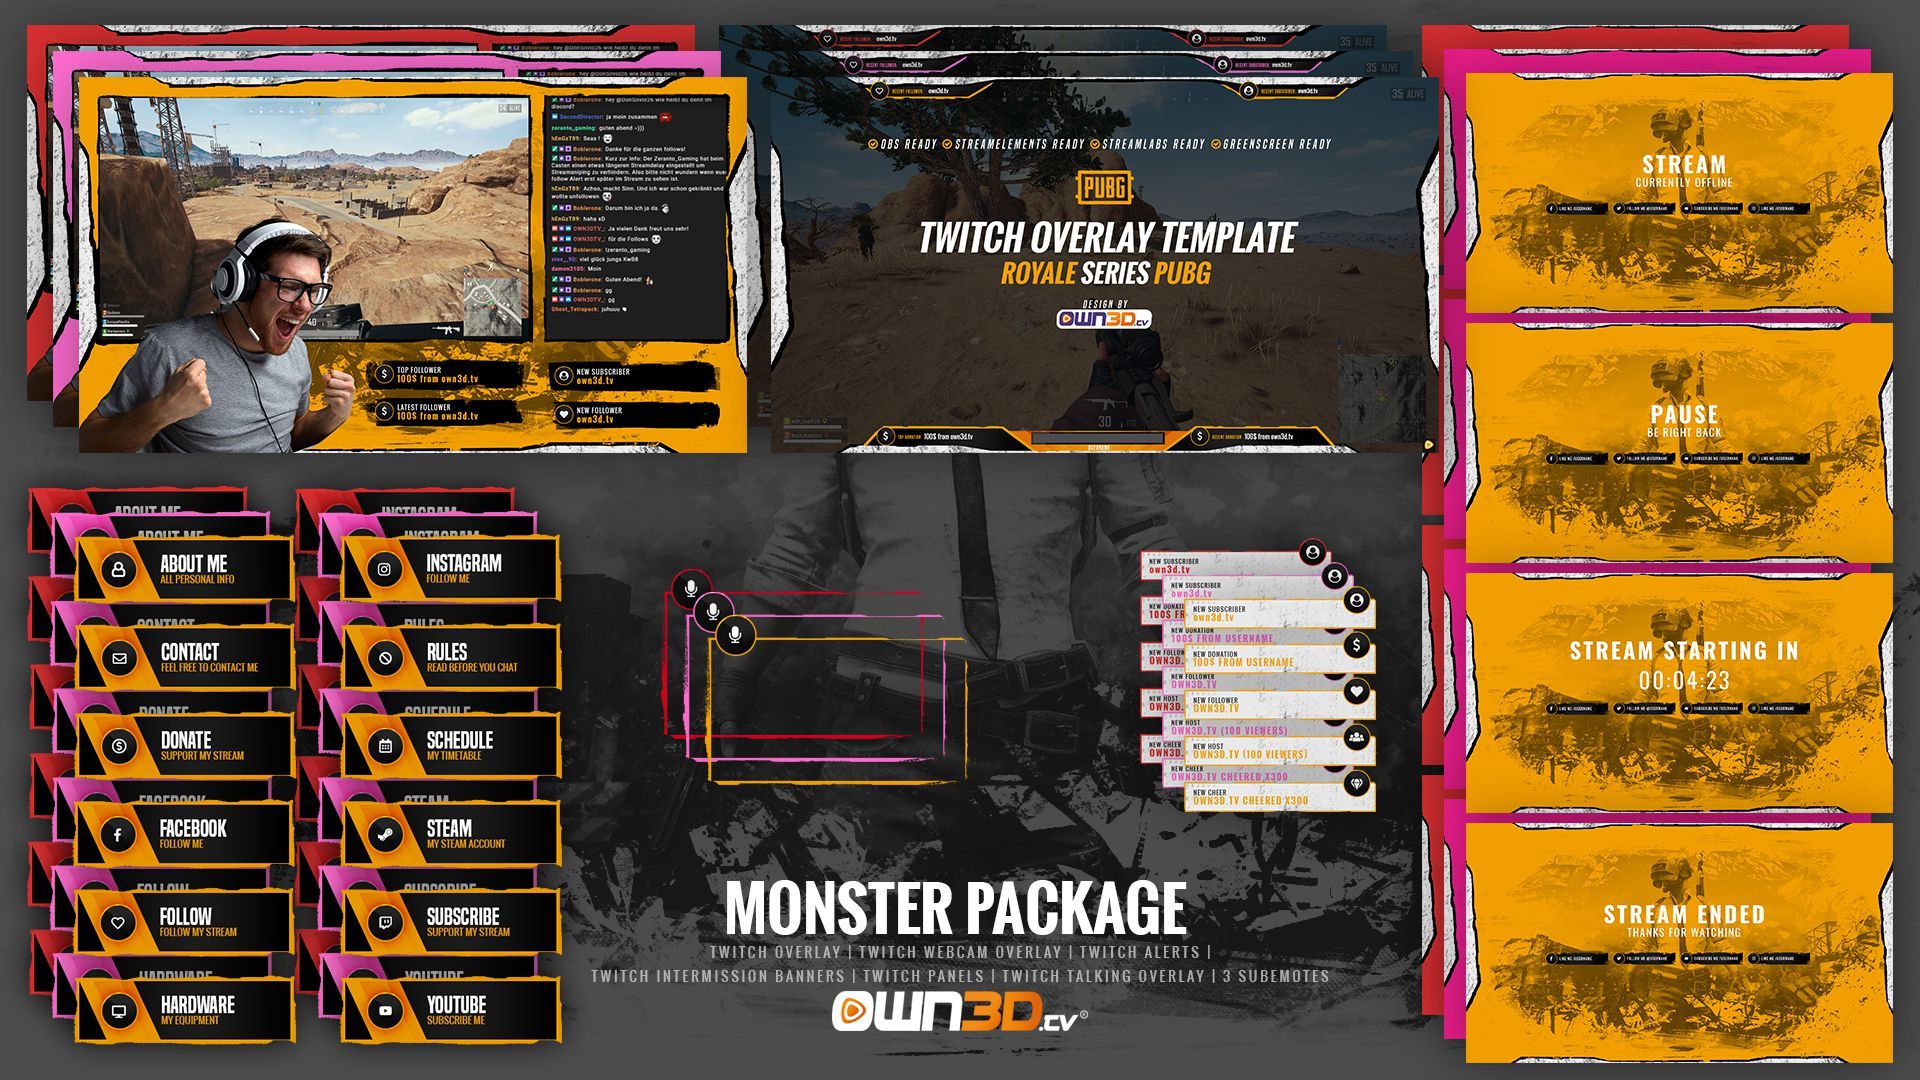 royale-series-ALL-twitch-overlay-package-03-monster.jpg